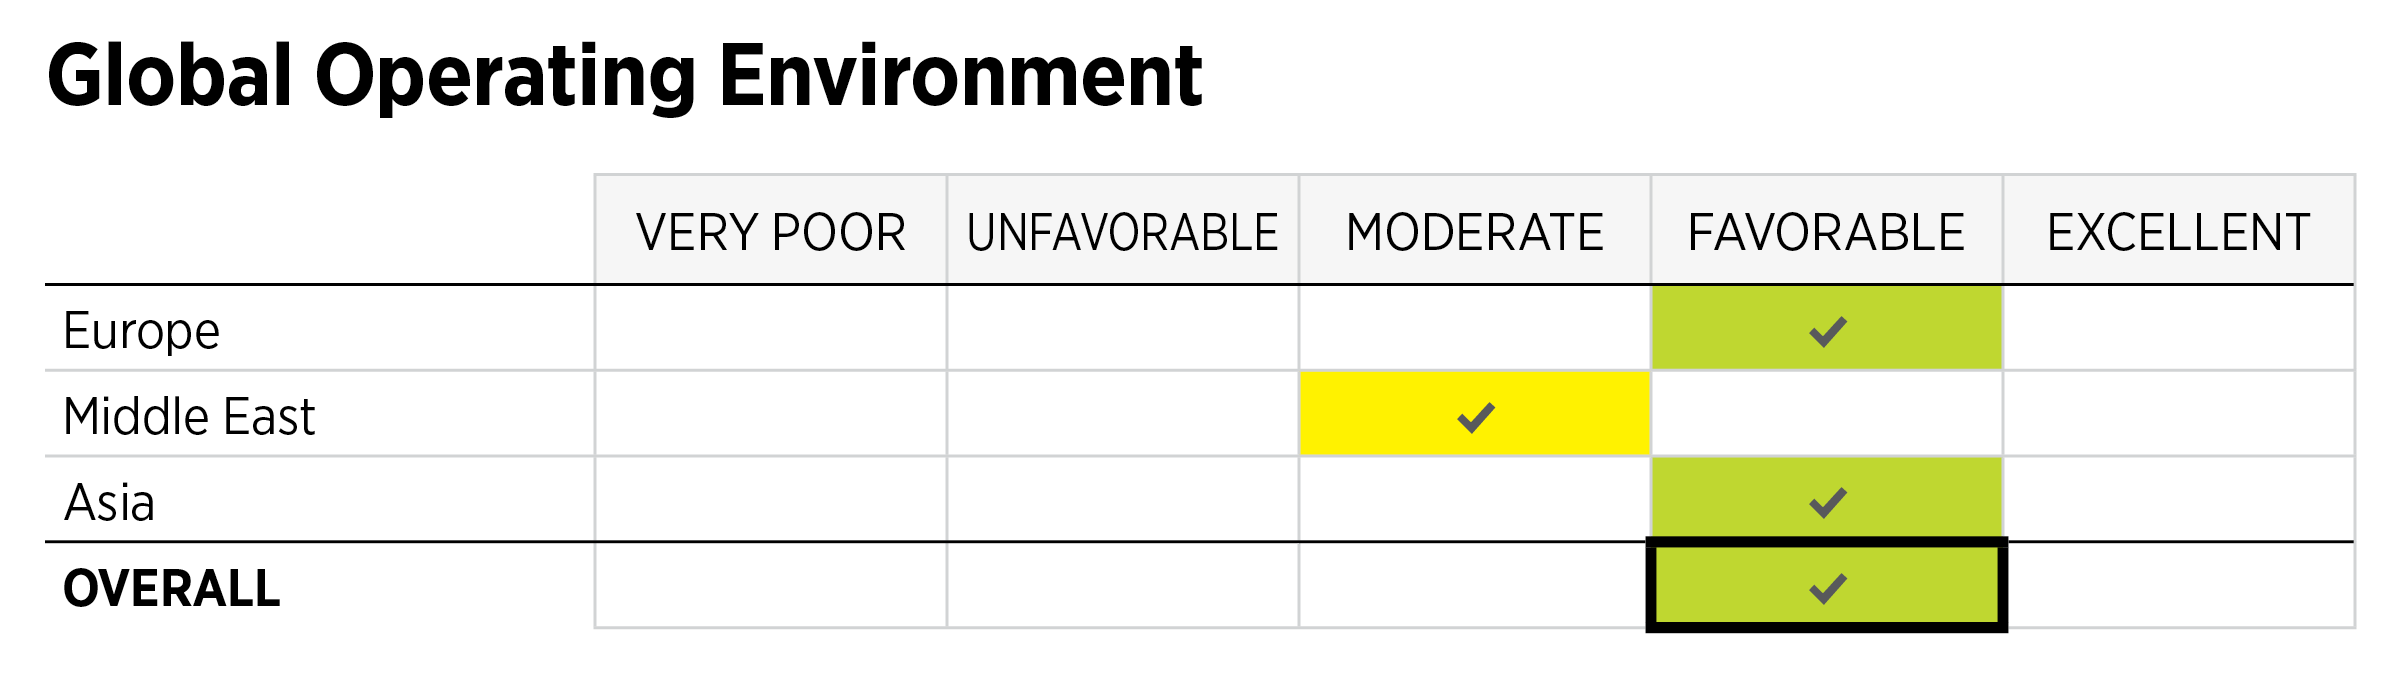 2019_IndexOfUSMilitaryStrength_ASSESSMENTS_Environment_SUMMARY.png